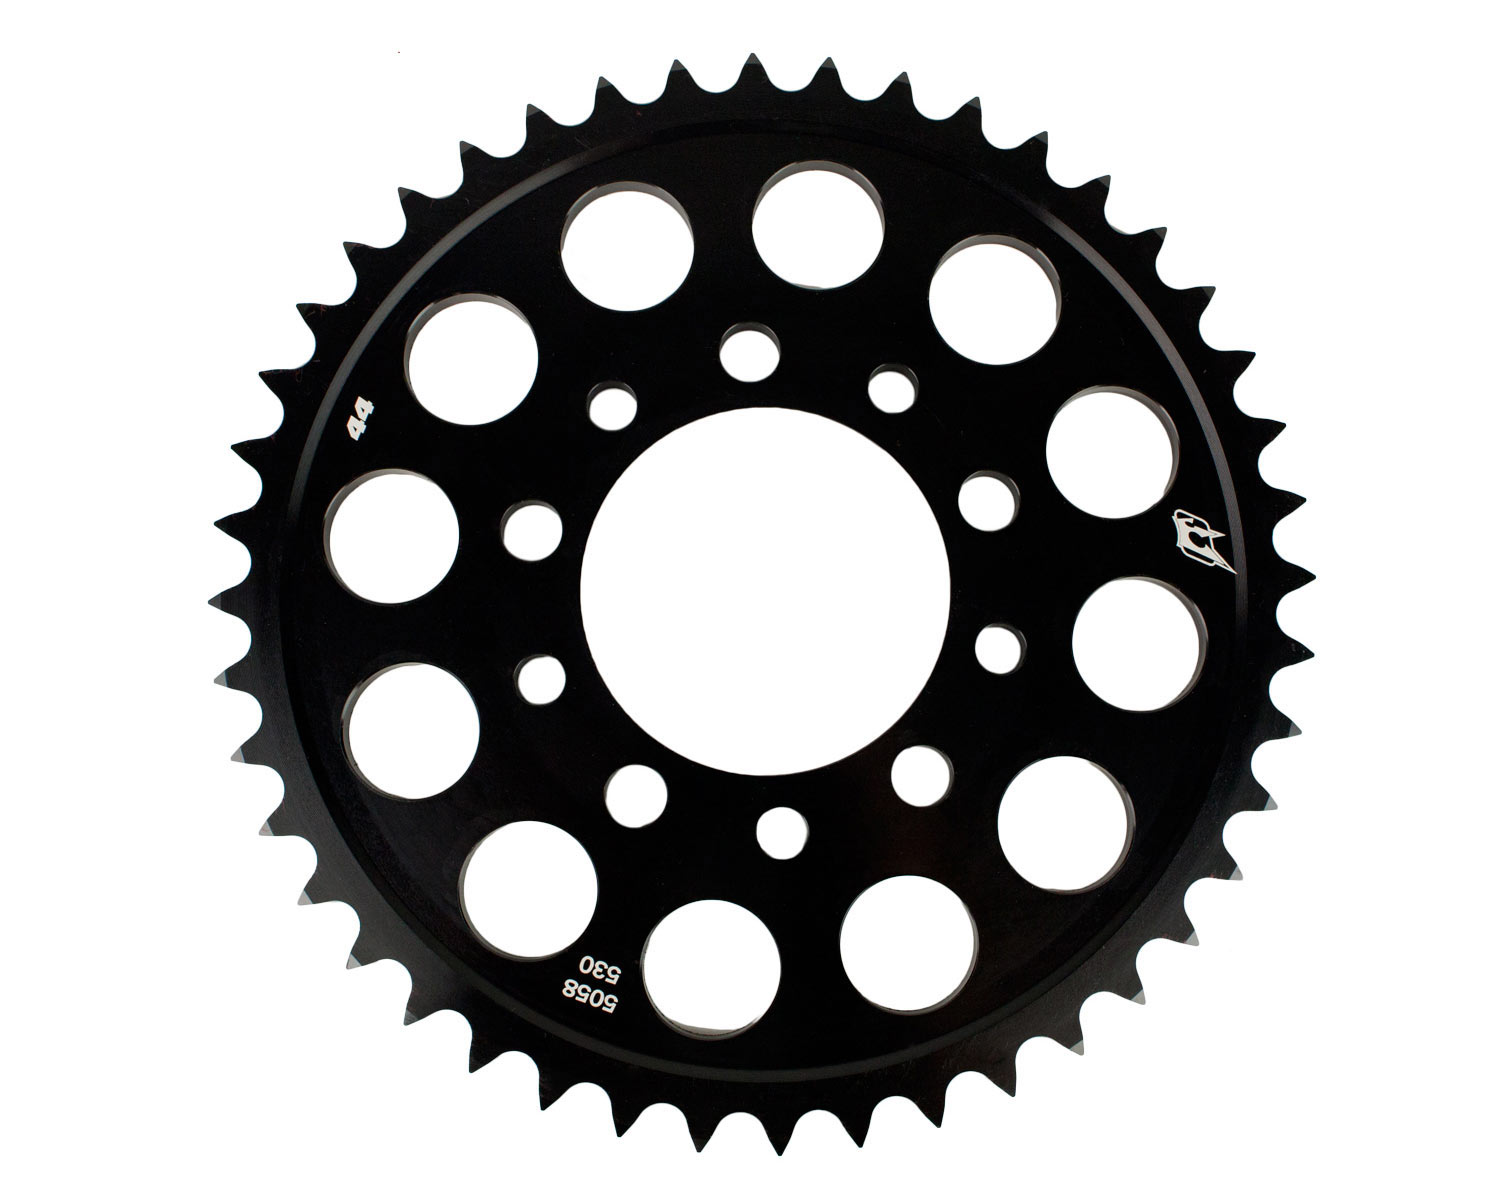 Driven Colored 525 Rear Sprocket for FZ.